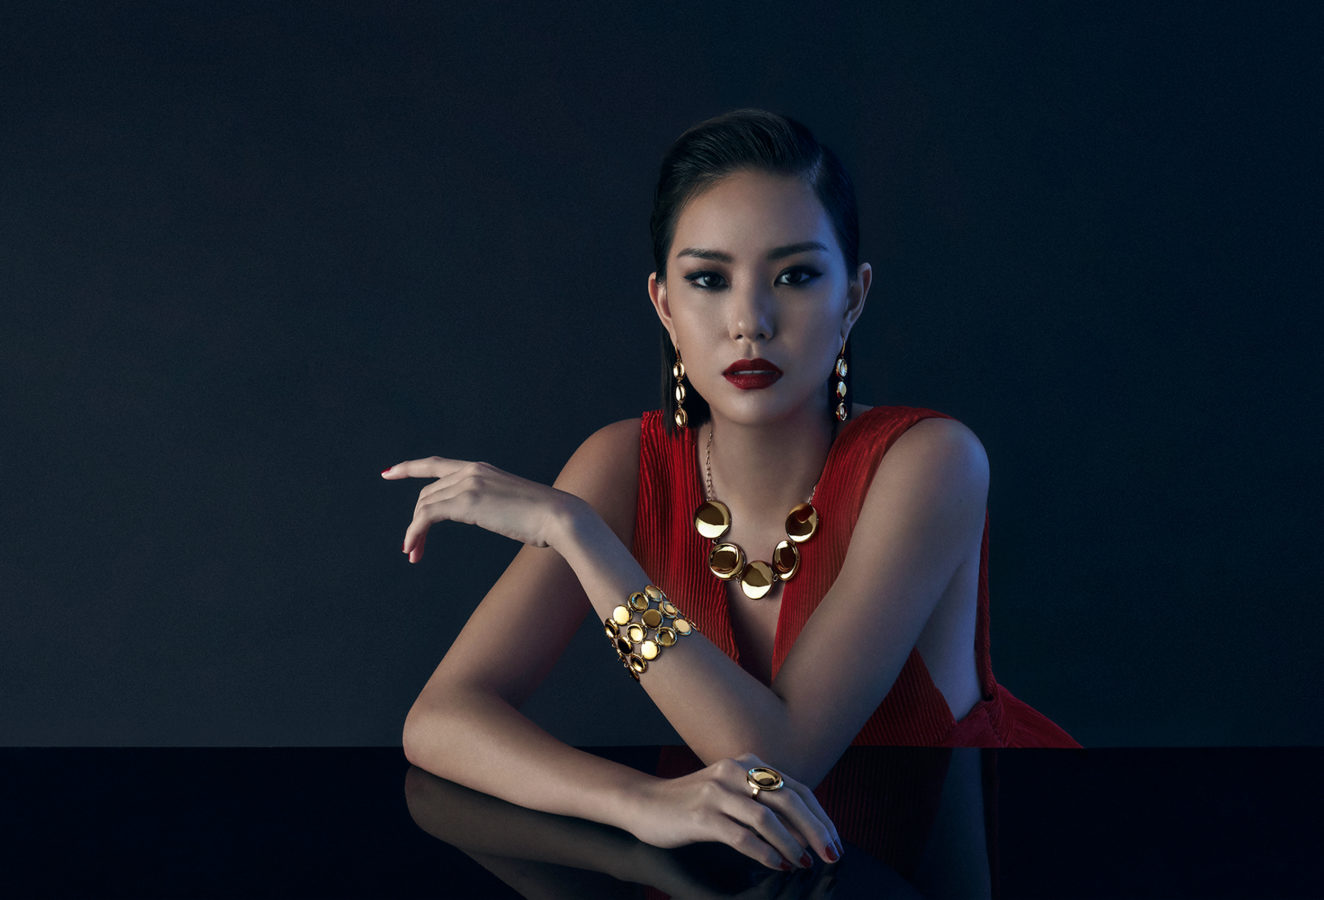 Poh Heng Jewellery's new ORO22 collection is an enthralling homage to the lunar eclipse